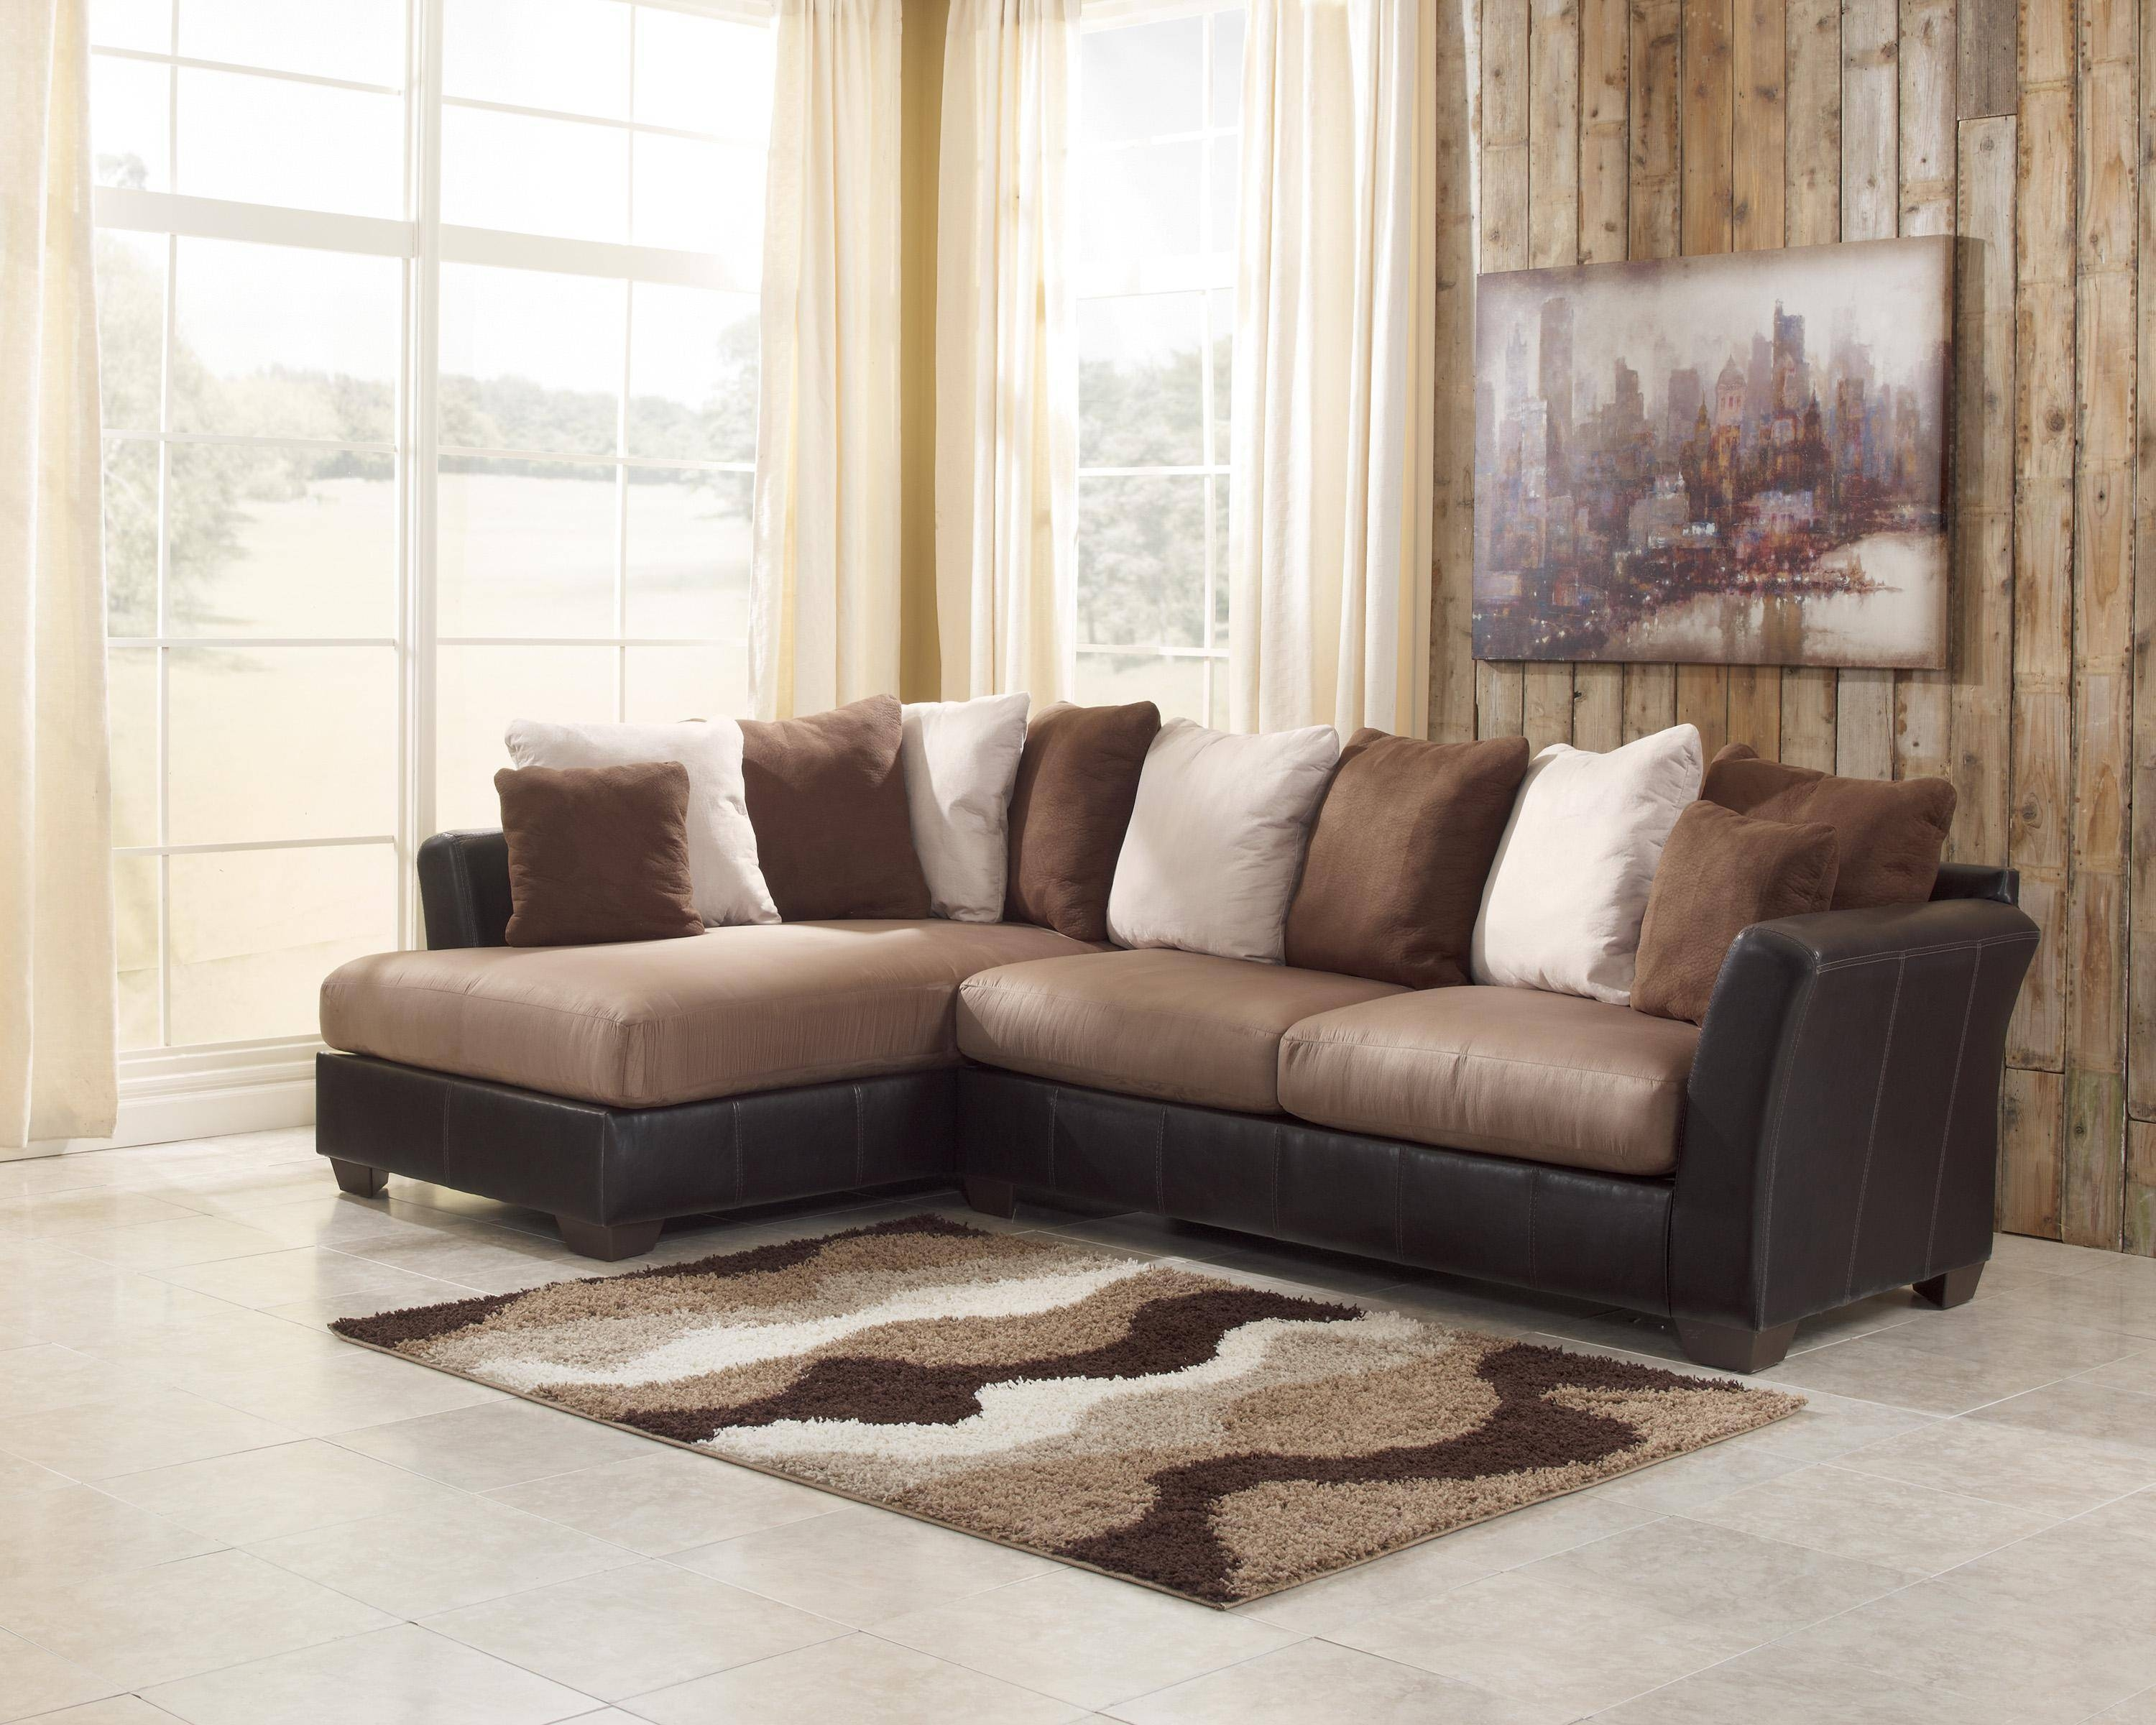 Two Piece Sectional Sofa With Chaise | Tehranmix Decoration inside Individual Piece Sectional Sofas (Image 25 of 25)